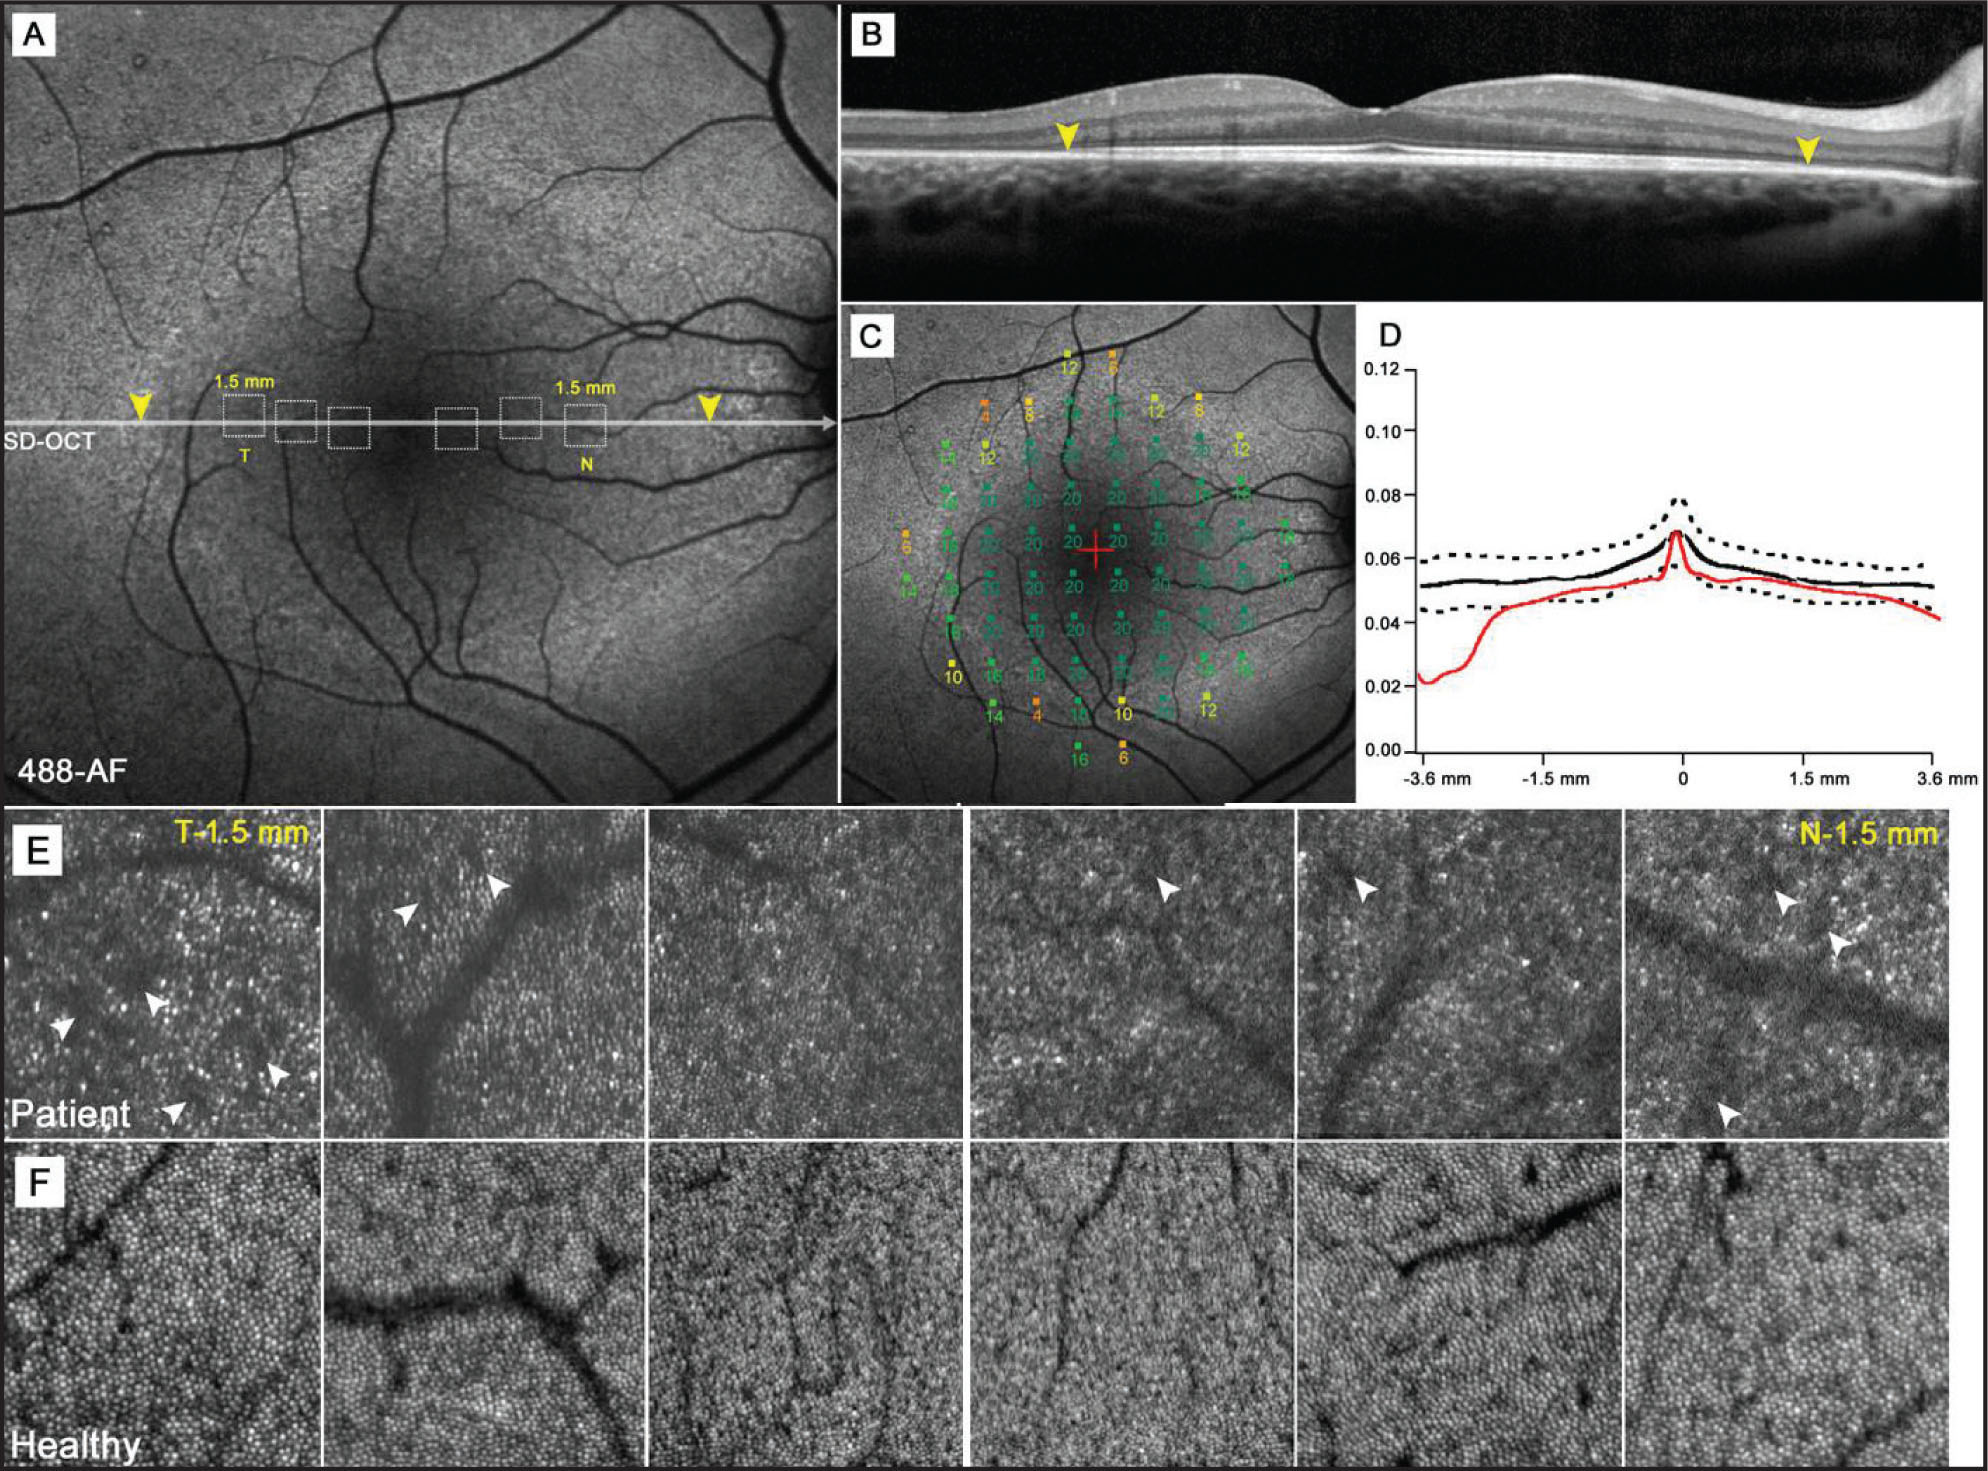 An 11-year-old boy (case 1) with autosomal-dominant RHO, D190N retinitis pigmentosa. (A) Autofluorescence (AF) image of the right macula exhibiting a hyperautofluorescent ring around the fovea. Yellow arrowheads mark disruption to the inner segment ellipsoid band as detected by spectral-domain OCT (B). Dotted squares represent corresponding areas of adaptive-optics scanning laser ophthalmoscope imaging (AO-SLO) (E). (C) Microperimetry mapping reveals a decline in visual sensitivity (dB) across the hyperautofluorescent ring but no loss in sensitivity in areas within the ring. (D) A plot of photoreceptor outer segment and retinal pigment epithelial thickness across the fovea and retinal thickness in the same area within the ring, showing abrupt thinning beyond the borders of the ring. (E) AO-SLO images taken at positions 0.5, 1.0, and 1.5 mm (temporally and nasally) from the fovea. Corresponding areas are mapped to a 30° AF image (A). (F) AO-SLO images taken within the same retinal positions in an age-matched healthy subject.